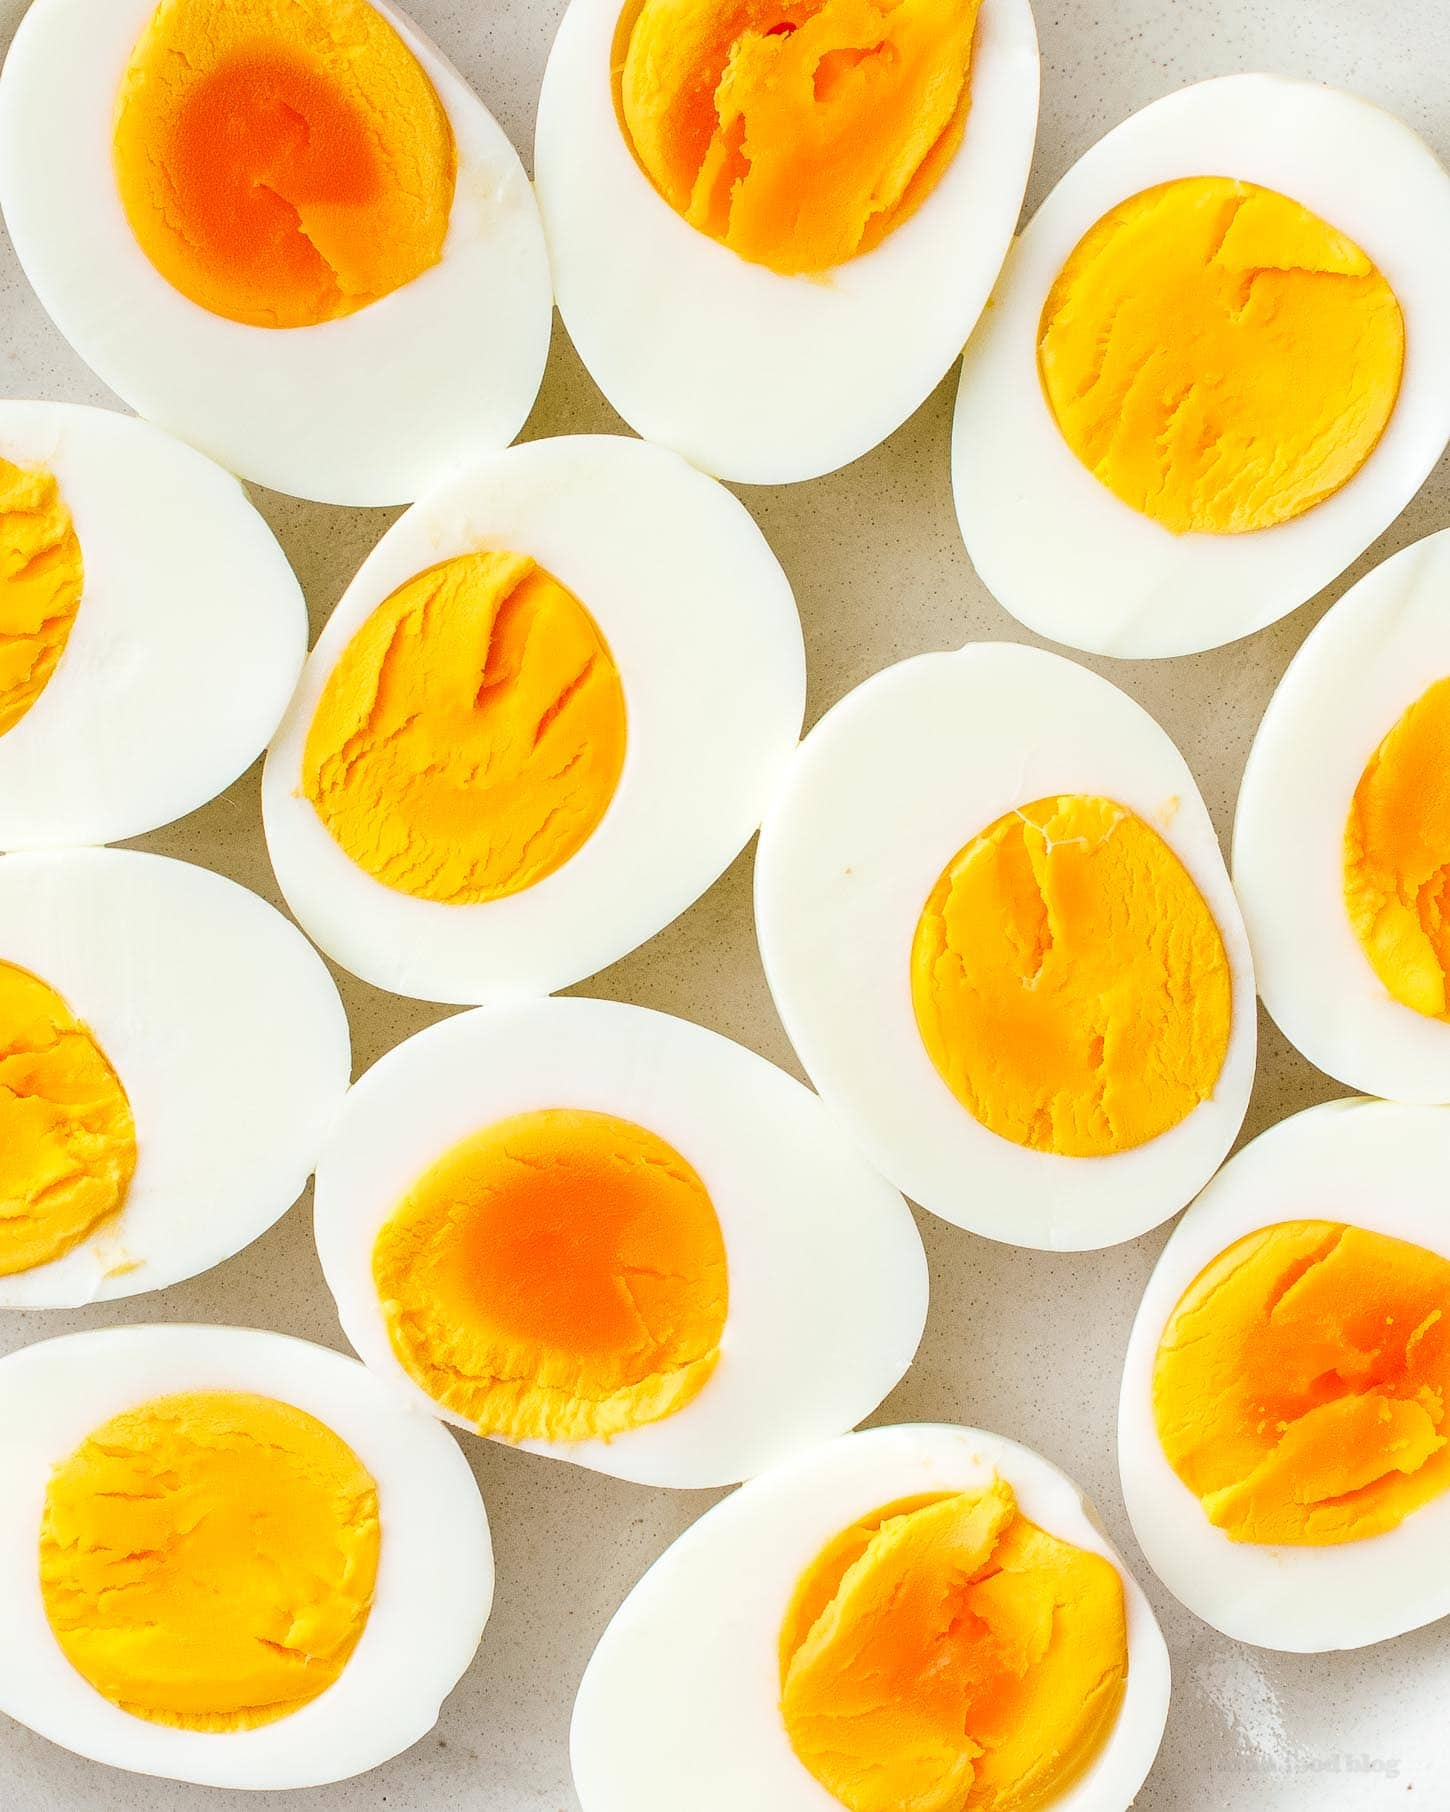 instant potted eggs |  www.iamafoodblog.com